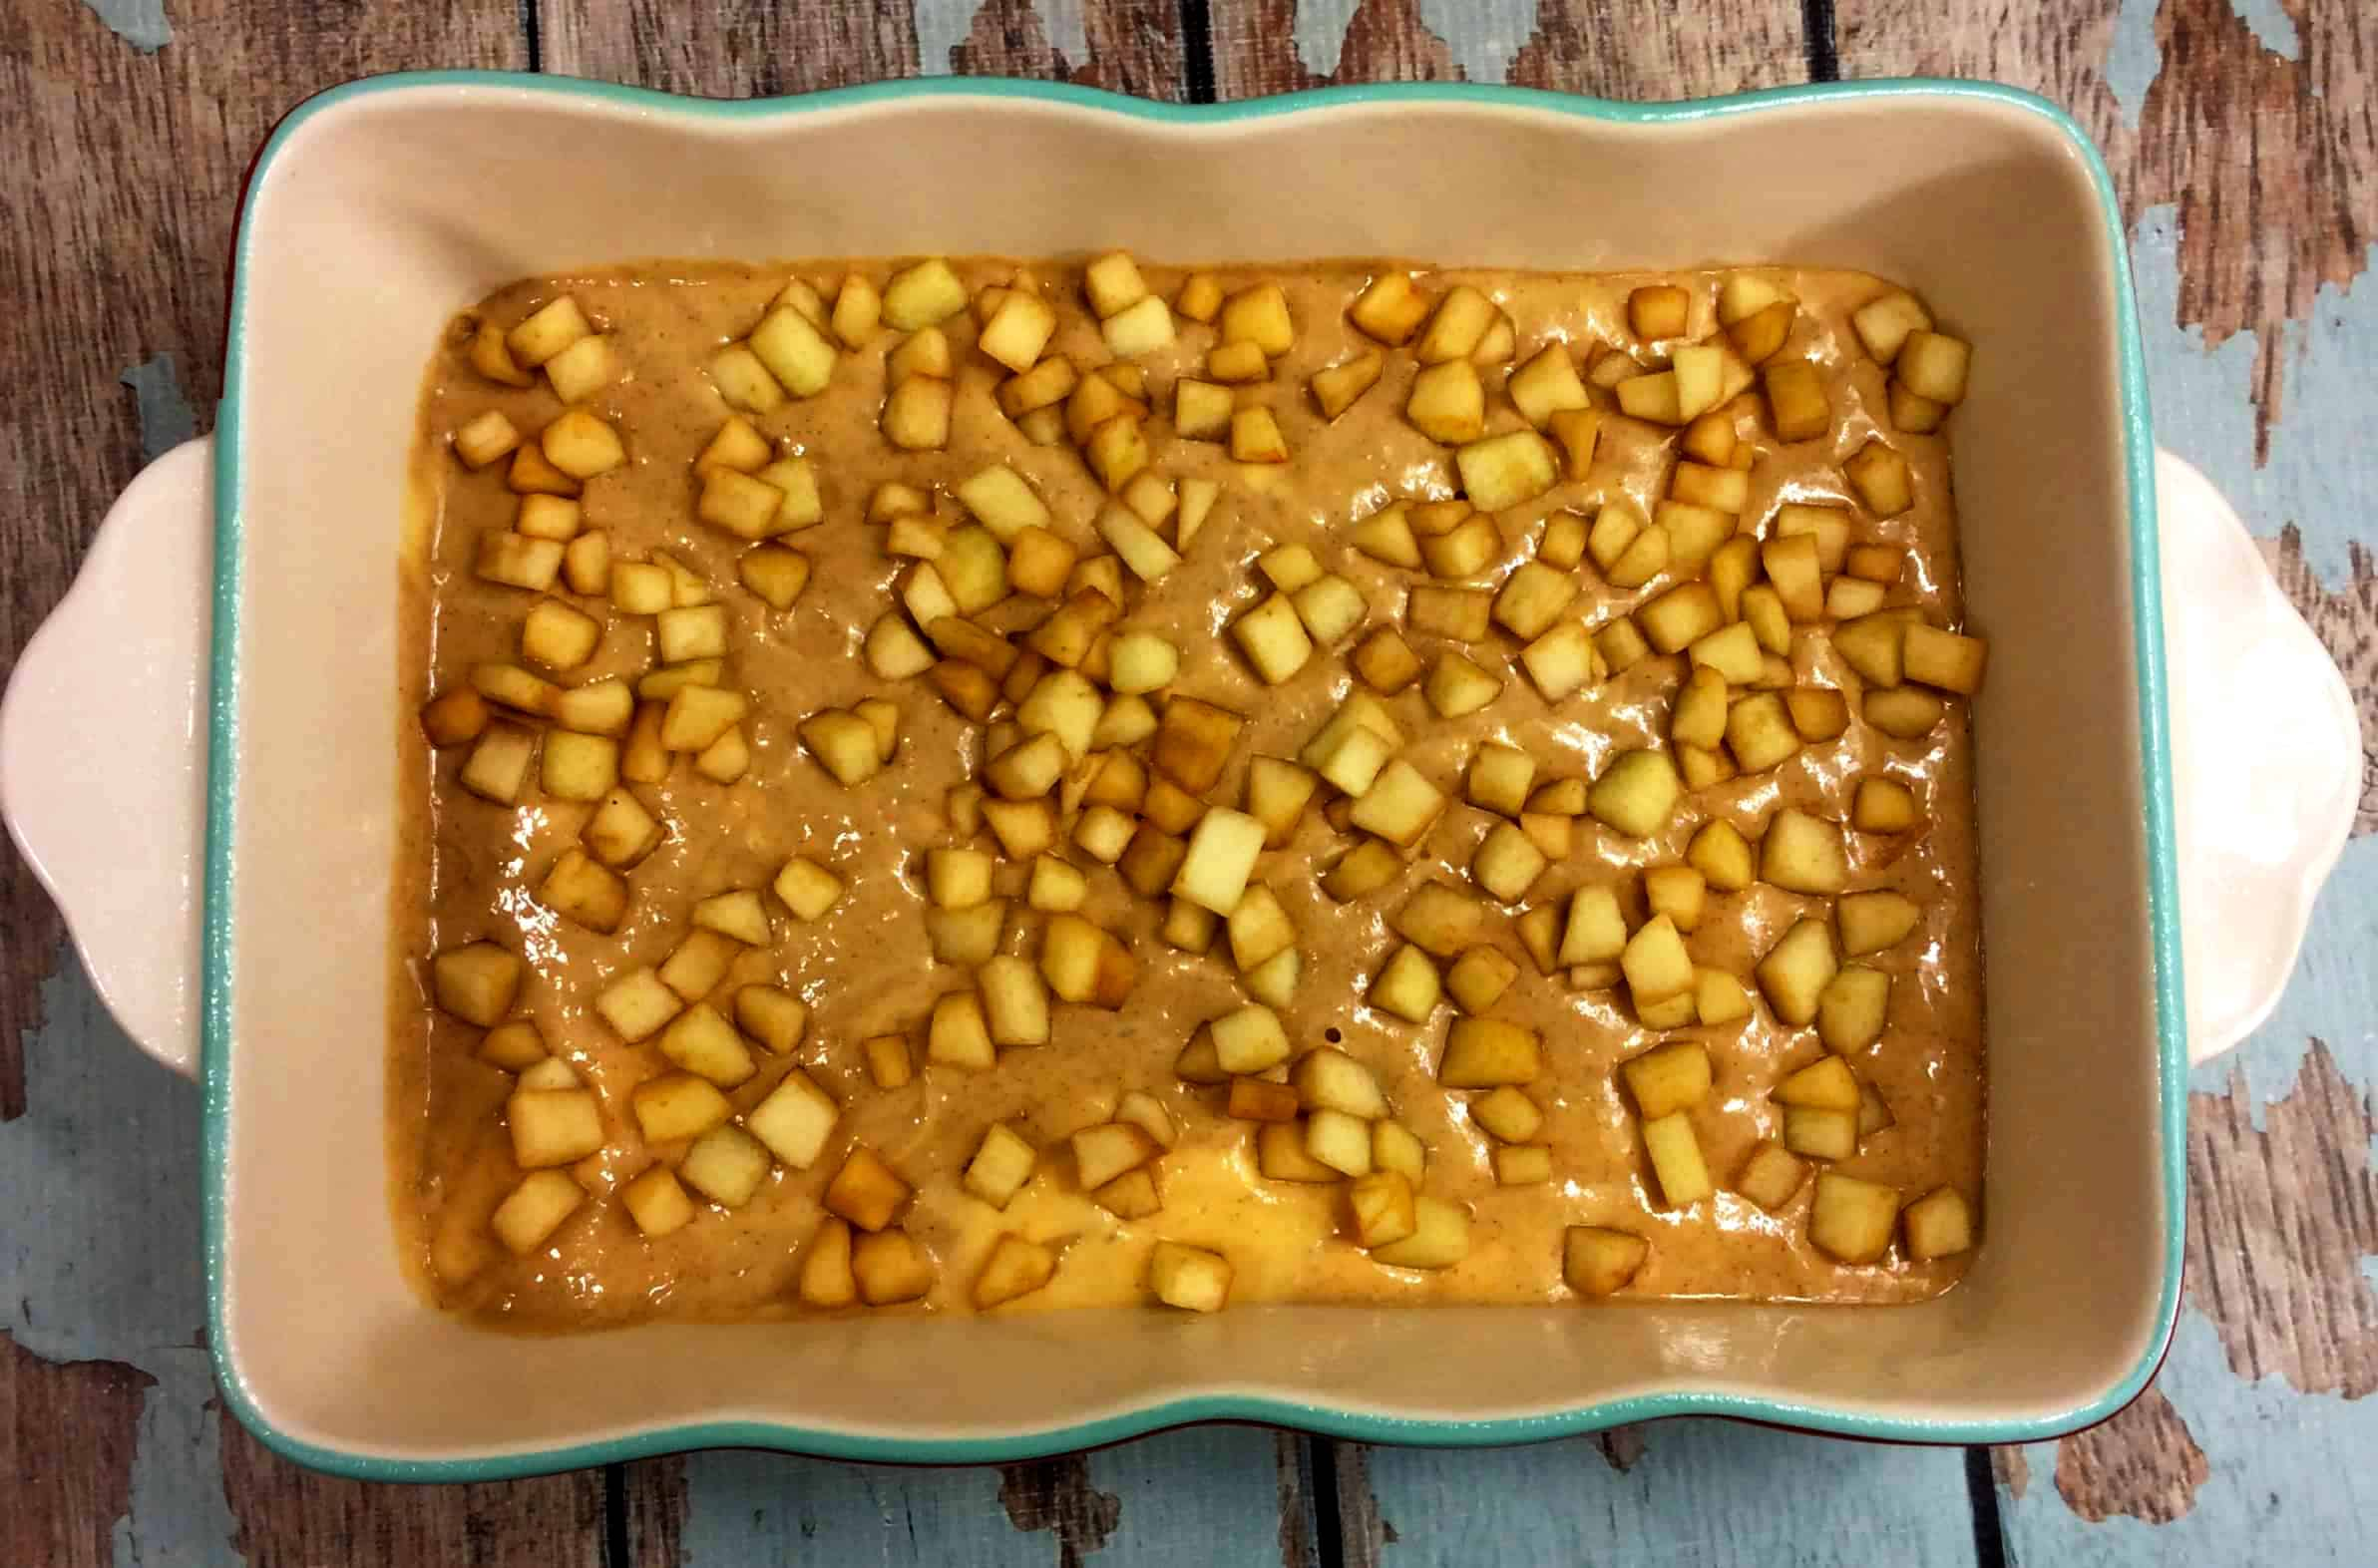 cake batter and apples in a baking dish